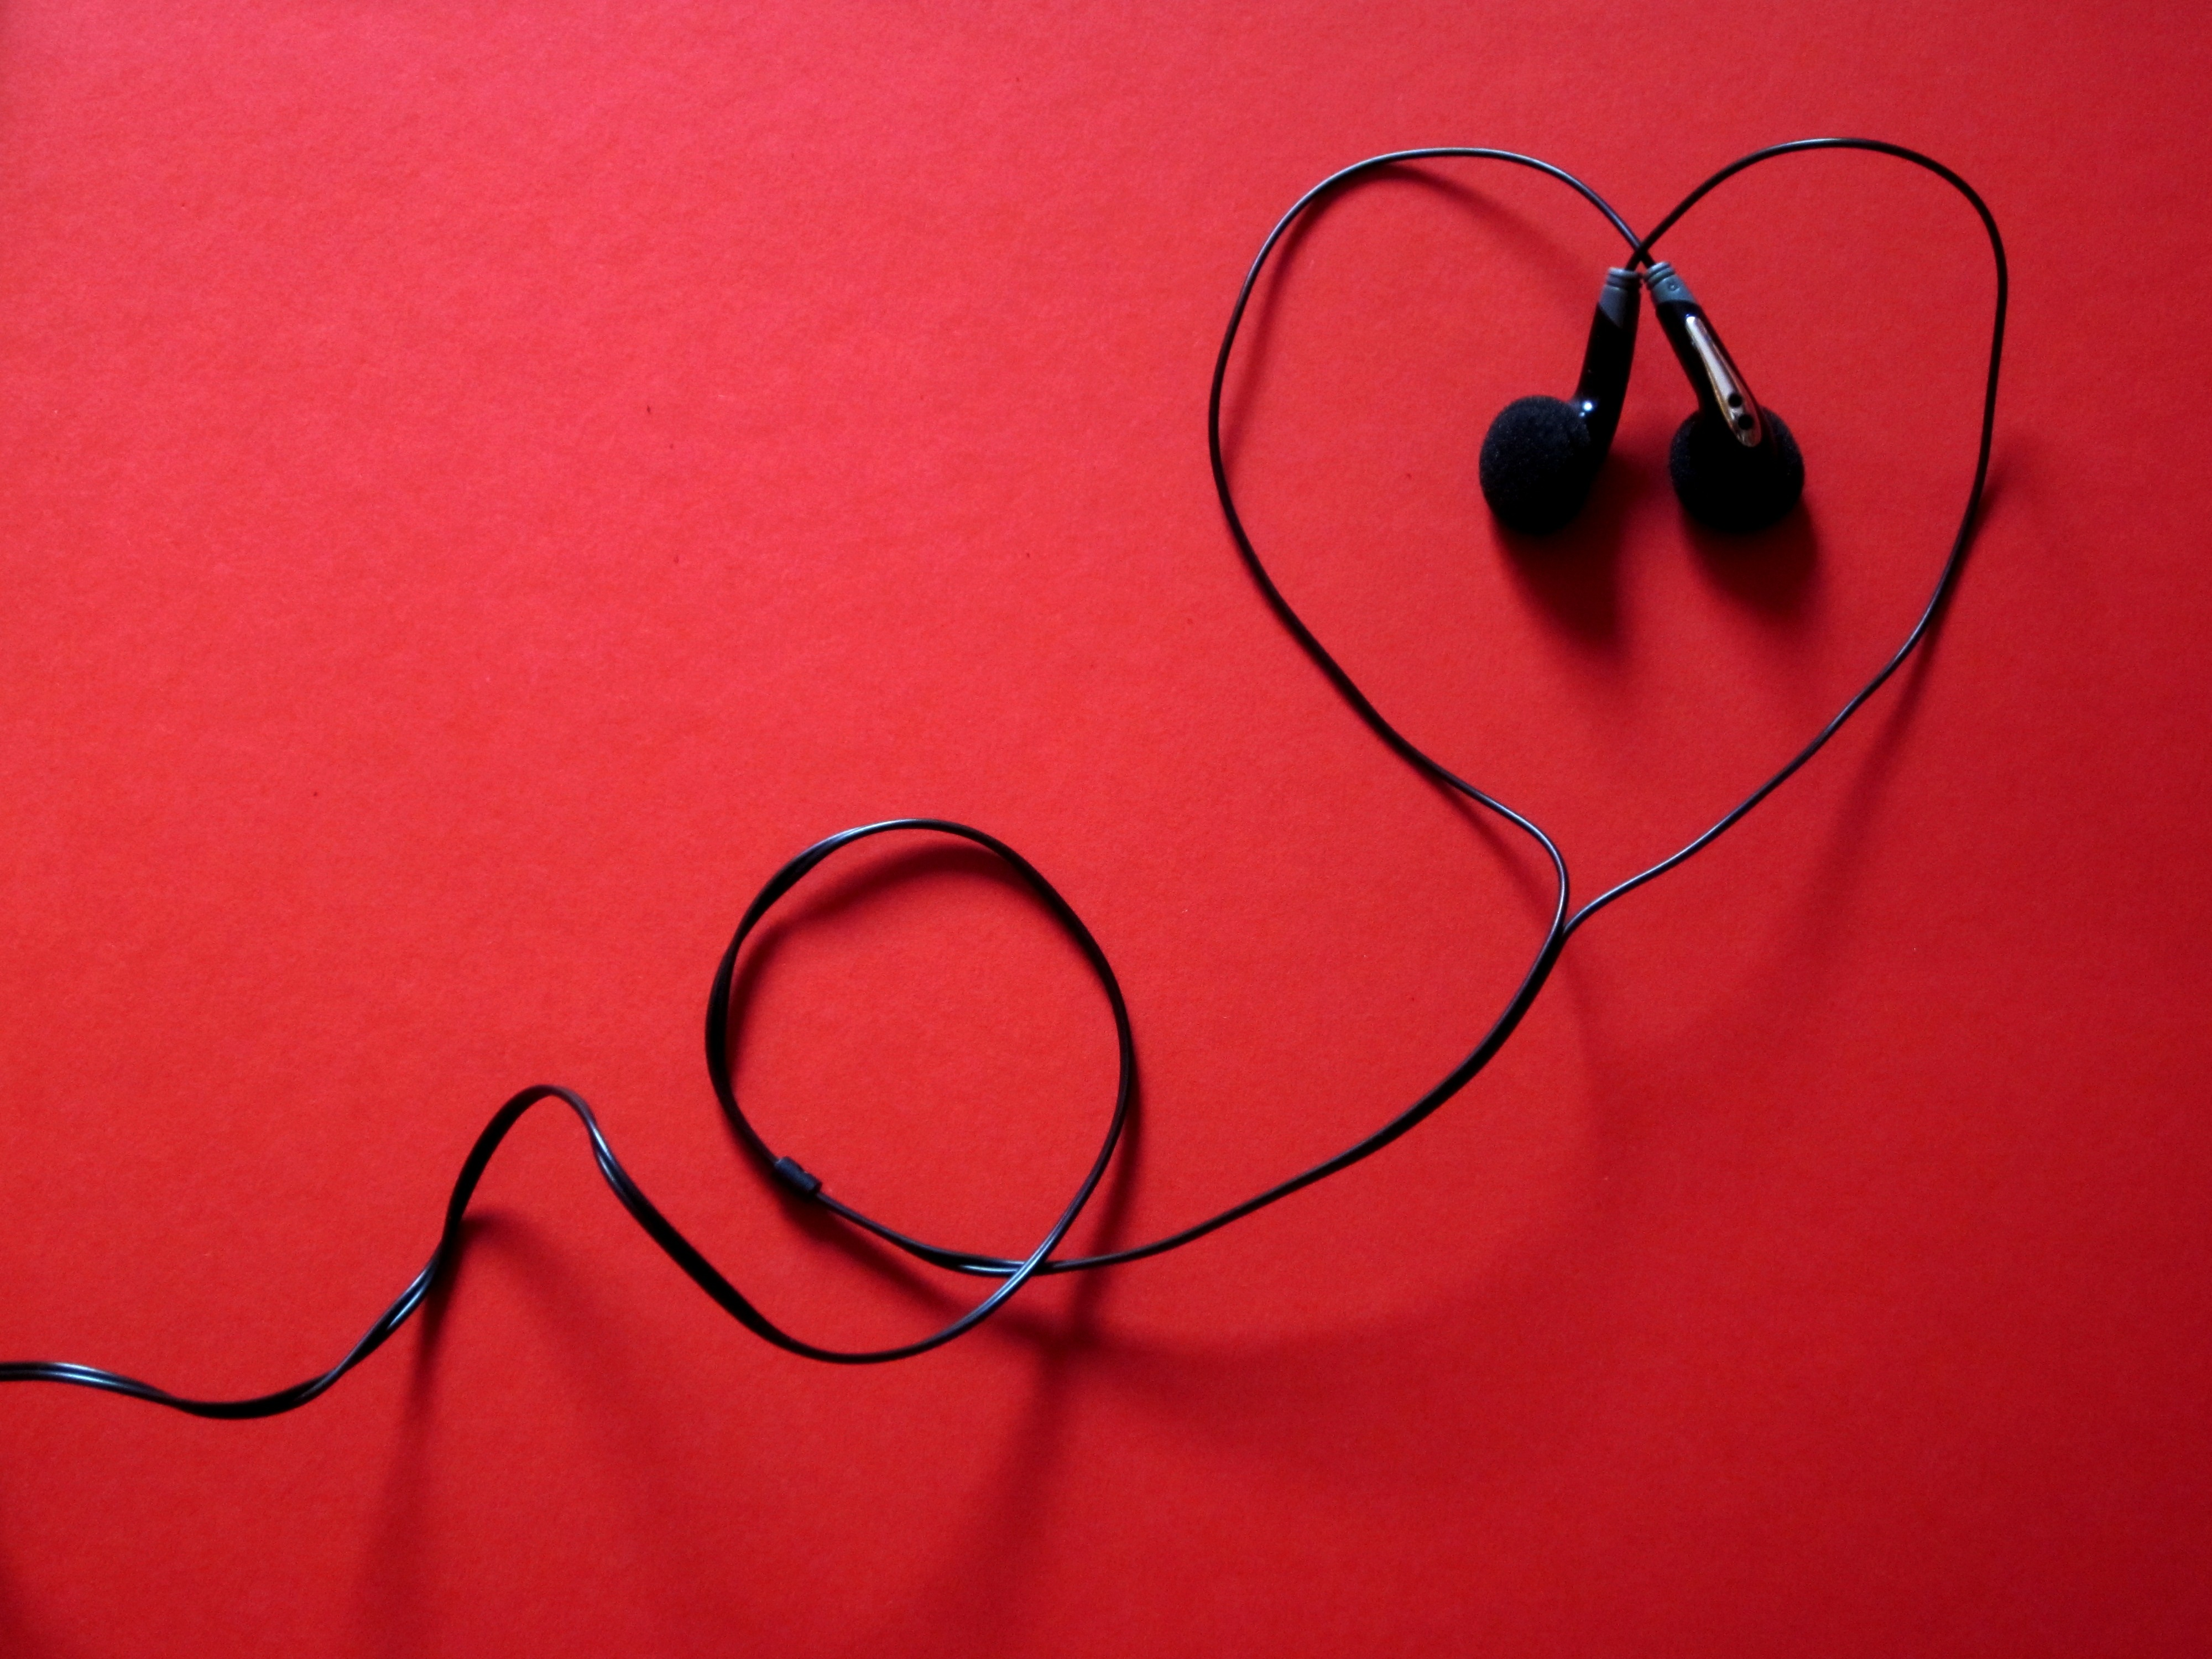 104802 download wallpaper Music, Headphones, Heart, Headset, Typeface screensavers and pictures for free